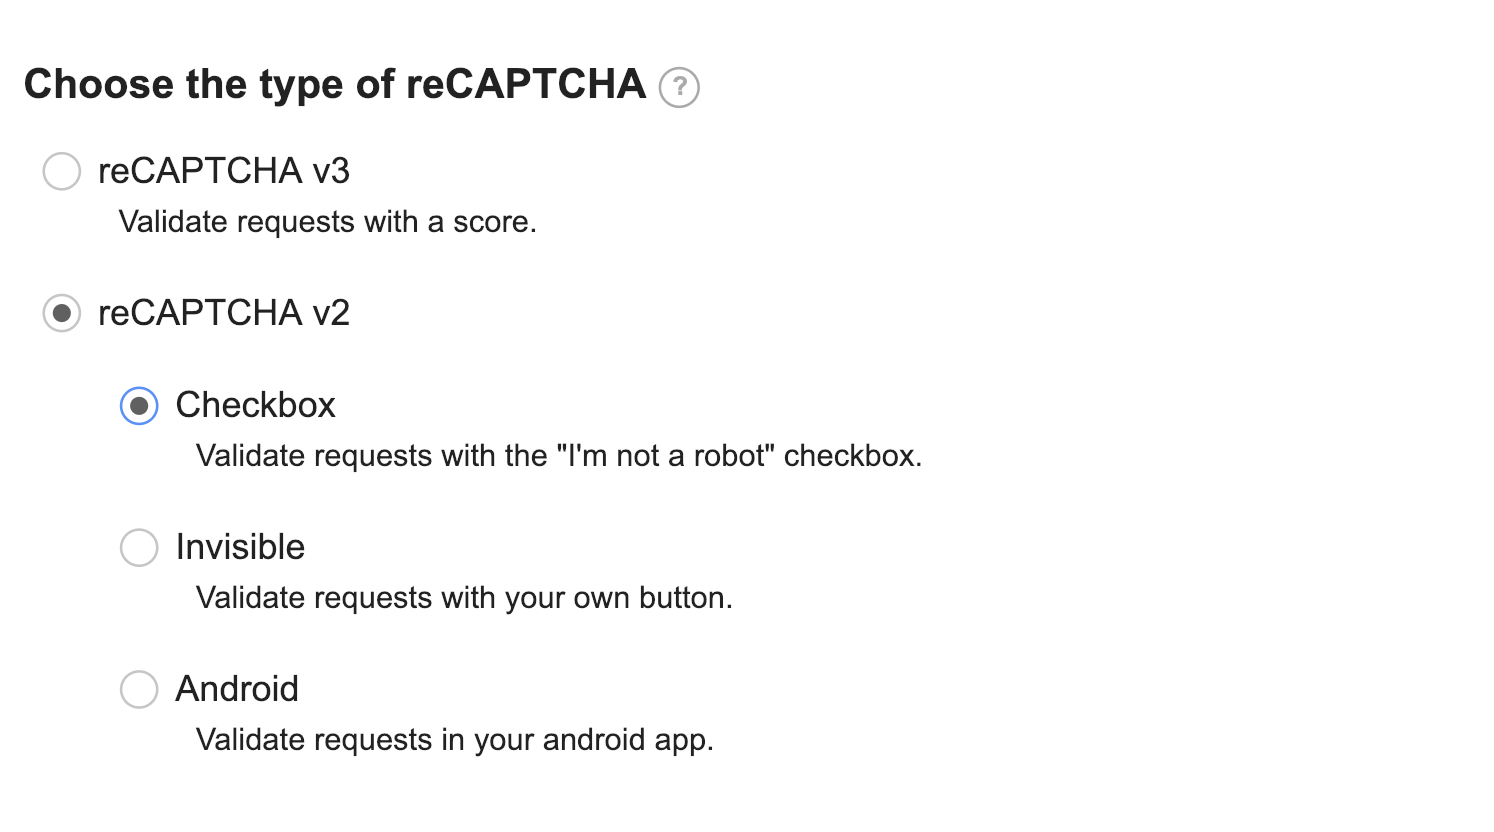 choose the type of reCAPTCHA: reCAPTCHA v2: Checkbox